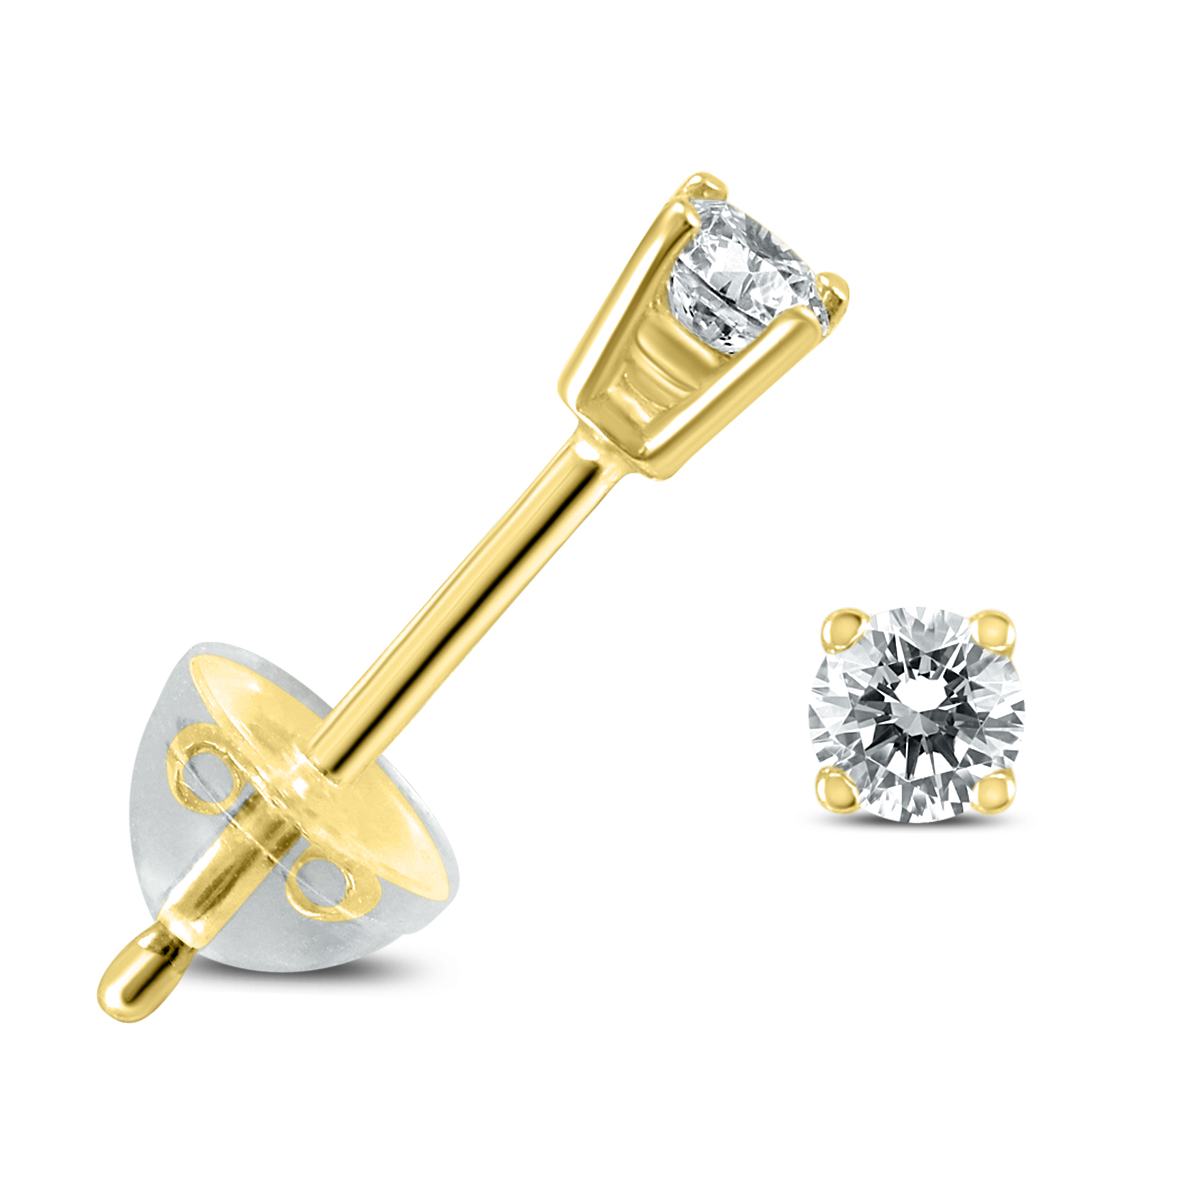 .05CTW Round Diamond Solitaire Stud Earrings In 14k Yellow Gold with Silicon Backs